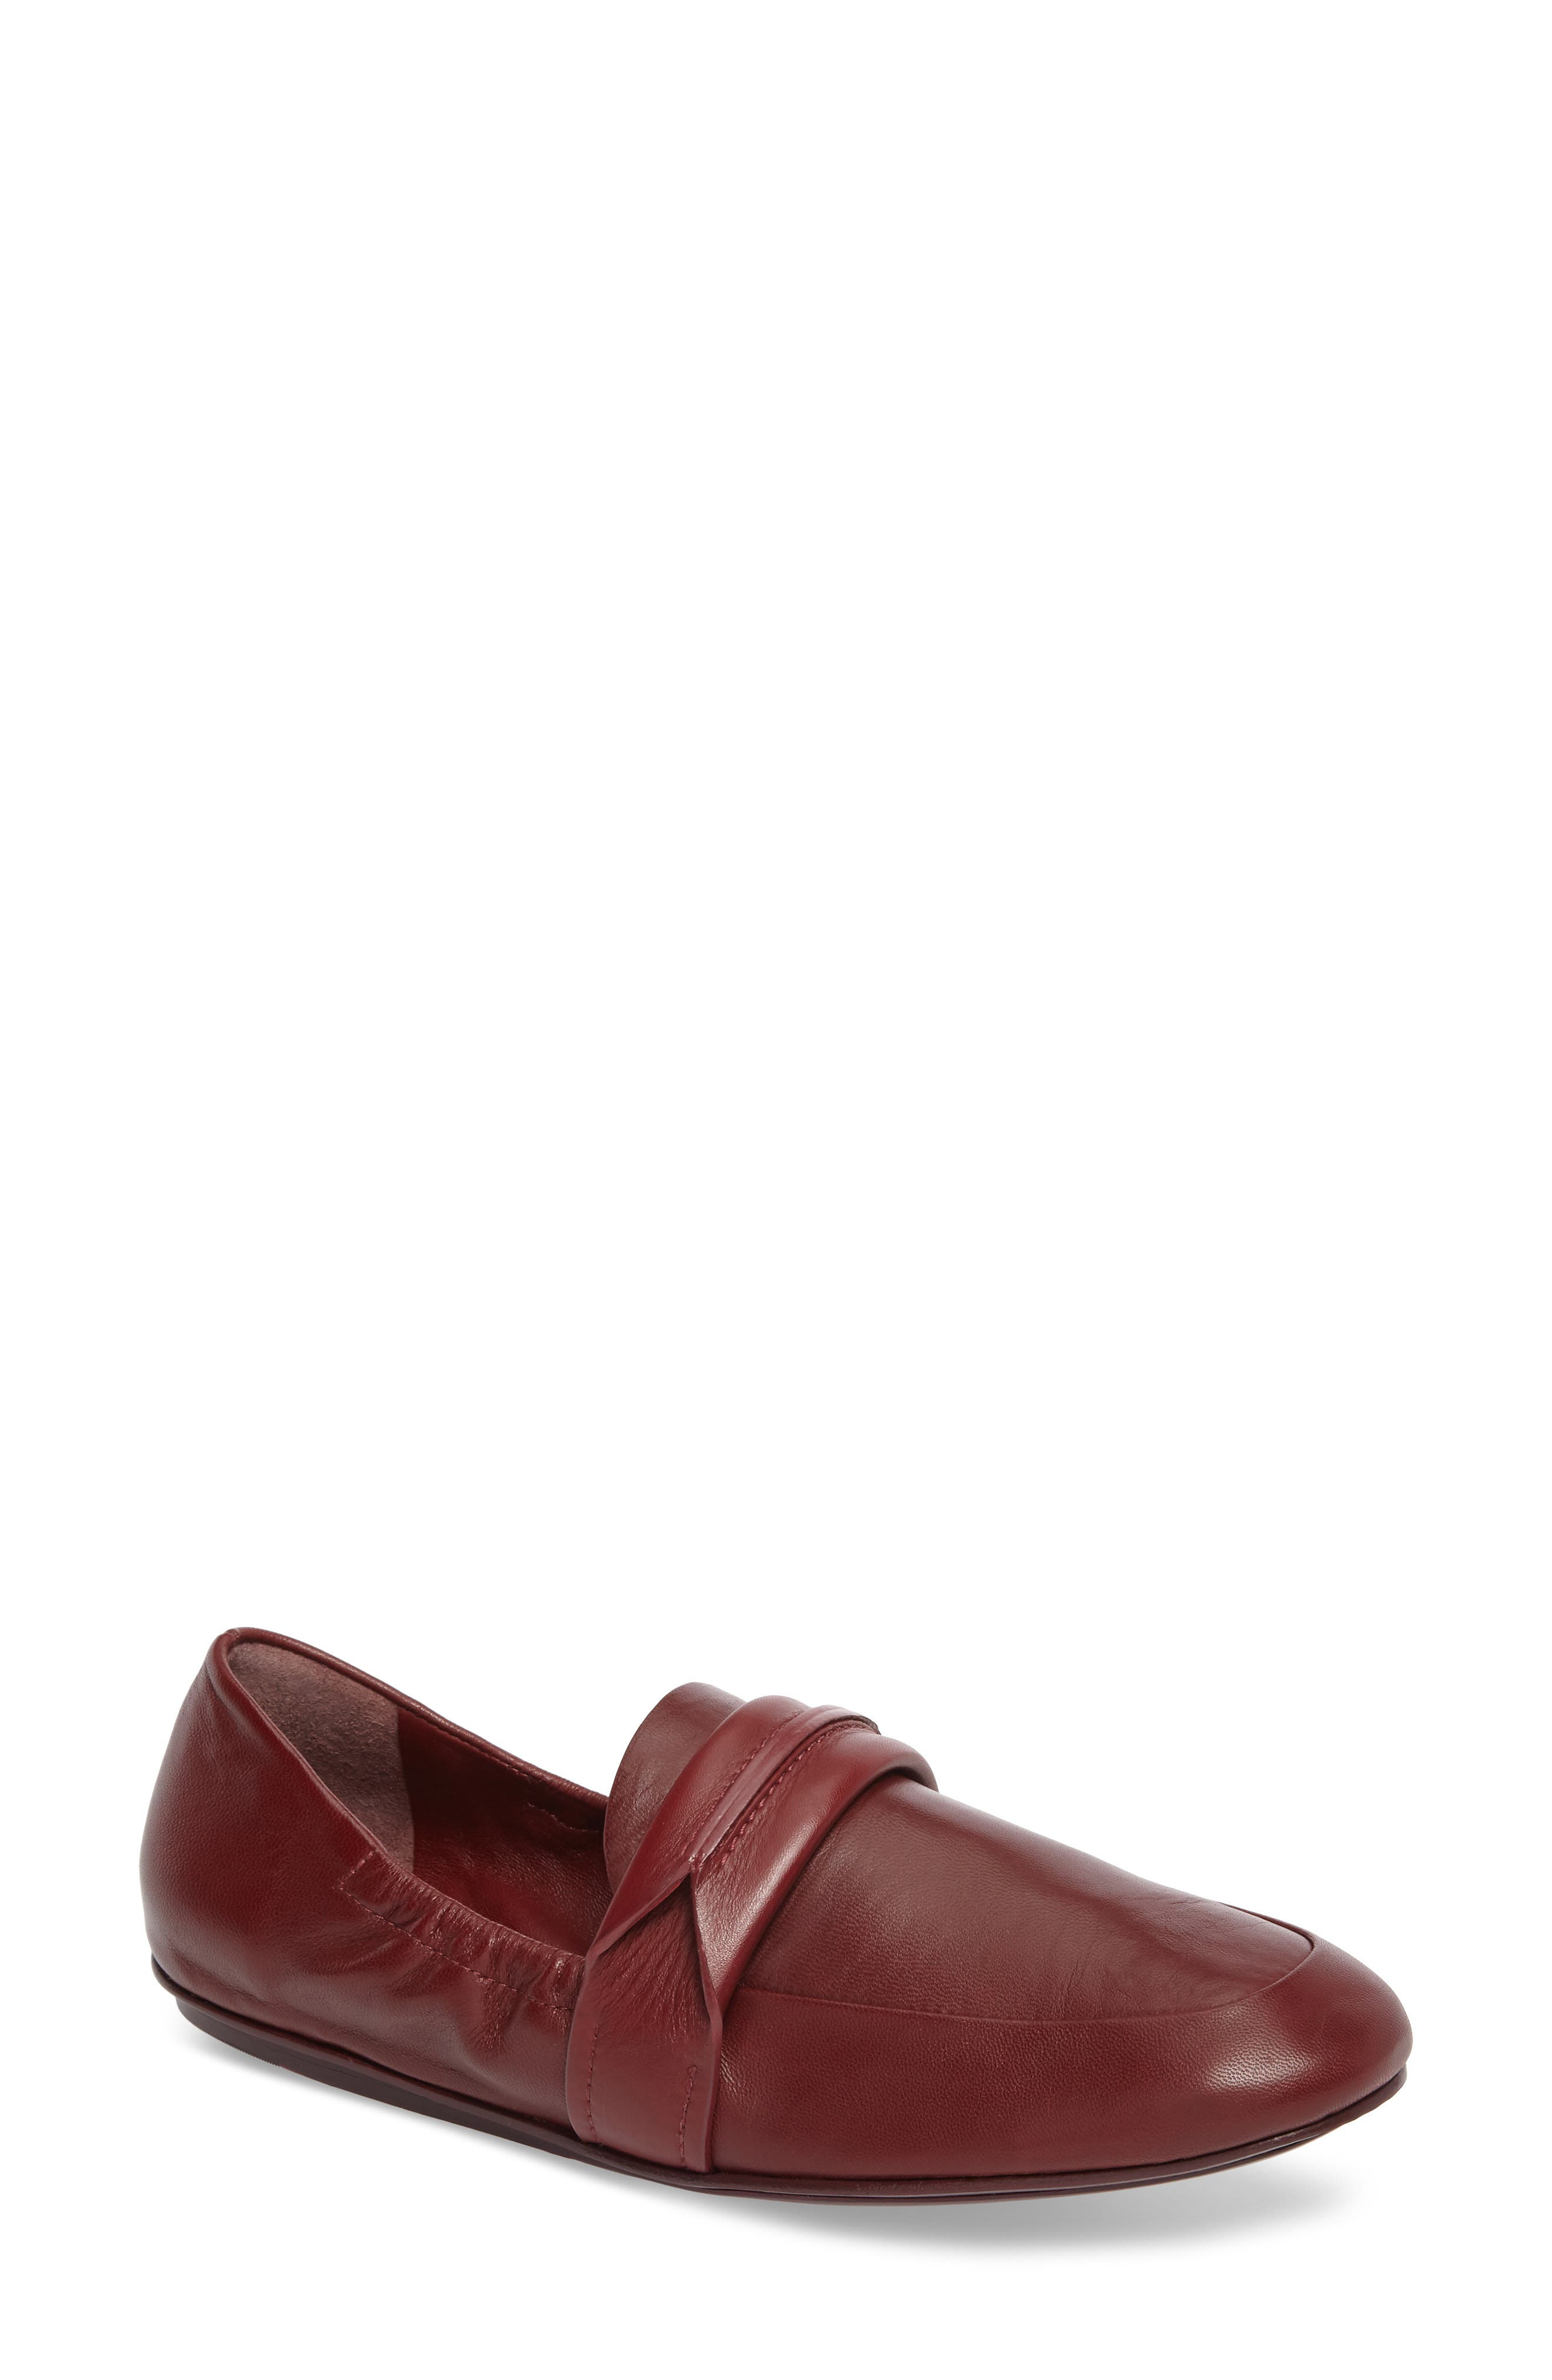 Alternate Image 1 Selected - Mercedes Castillo Erin Loafer Flat (Women)